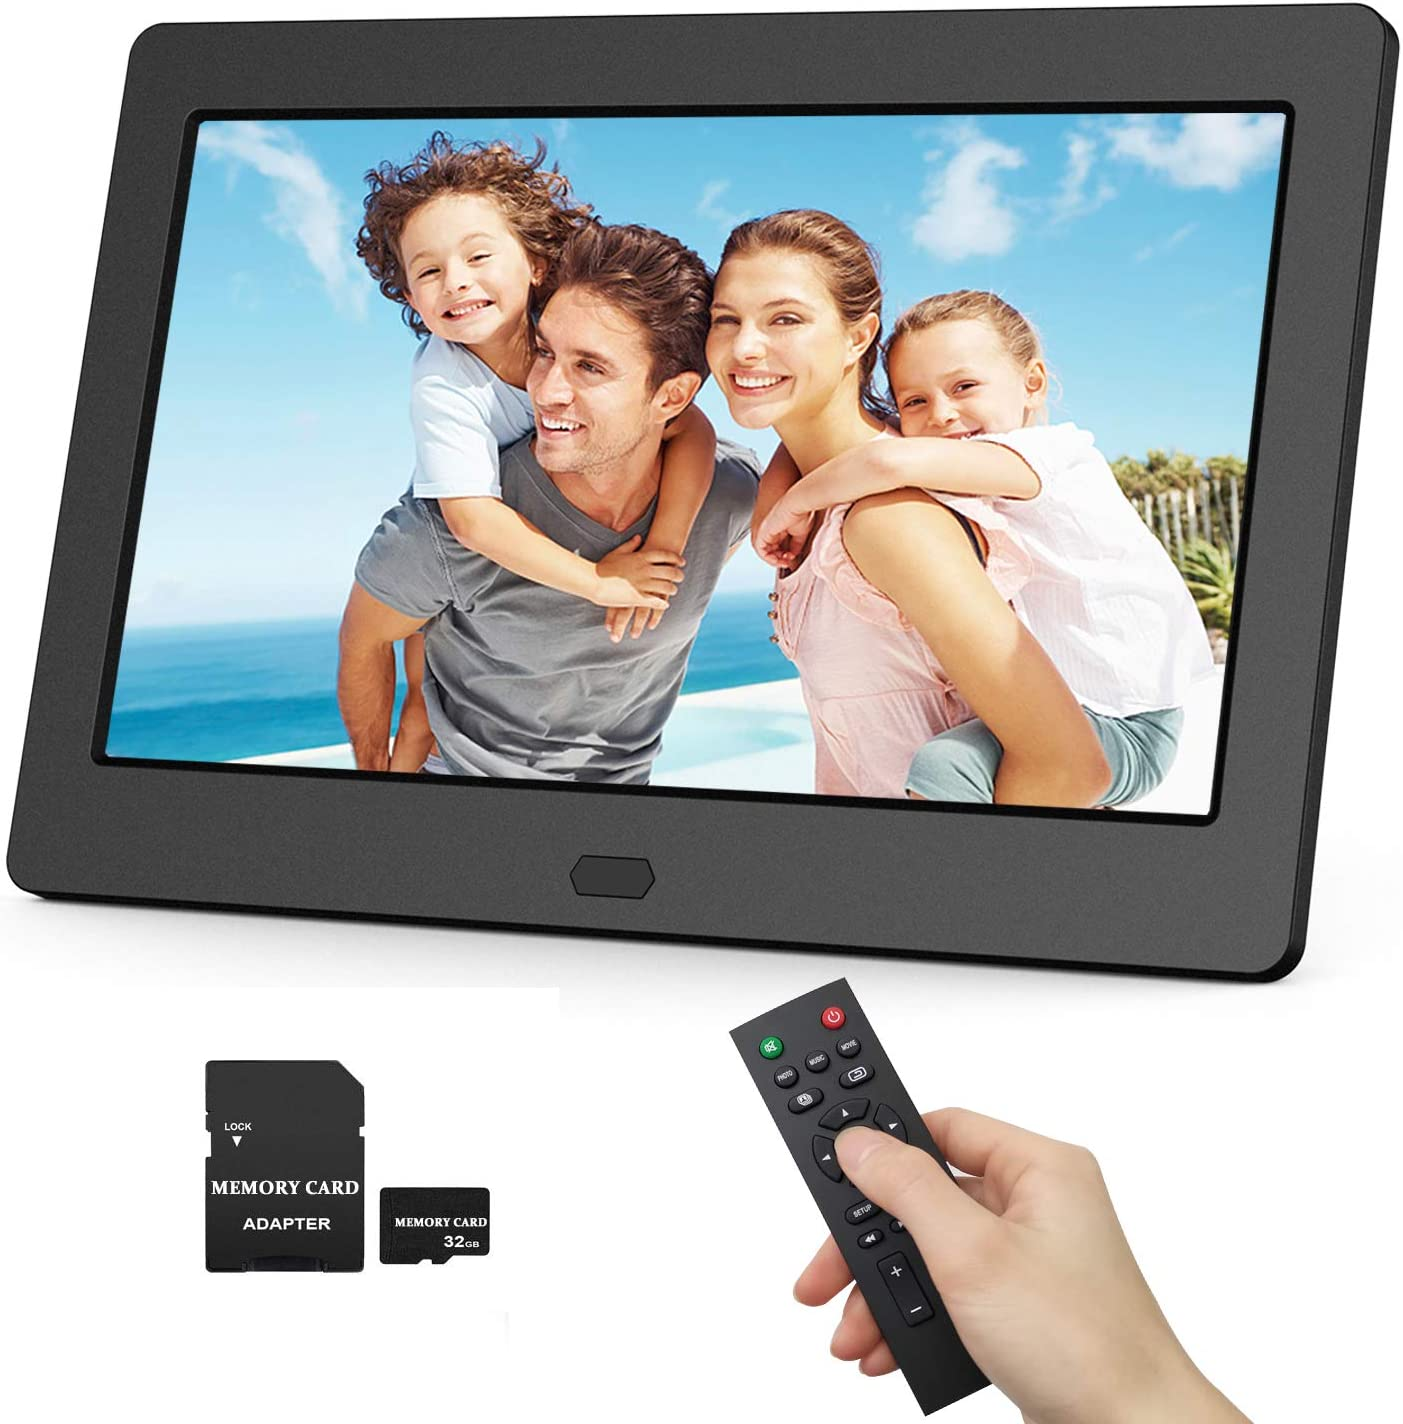 Wall Mountable Photo Auto Rotate Auto Play Digital Picture Frame 17.3 Inch 1920x1080 16:9 Ratio Screen Auto Time On//Off Background Music Motion Sensor Remote Controller Include 32GB SD Card